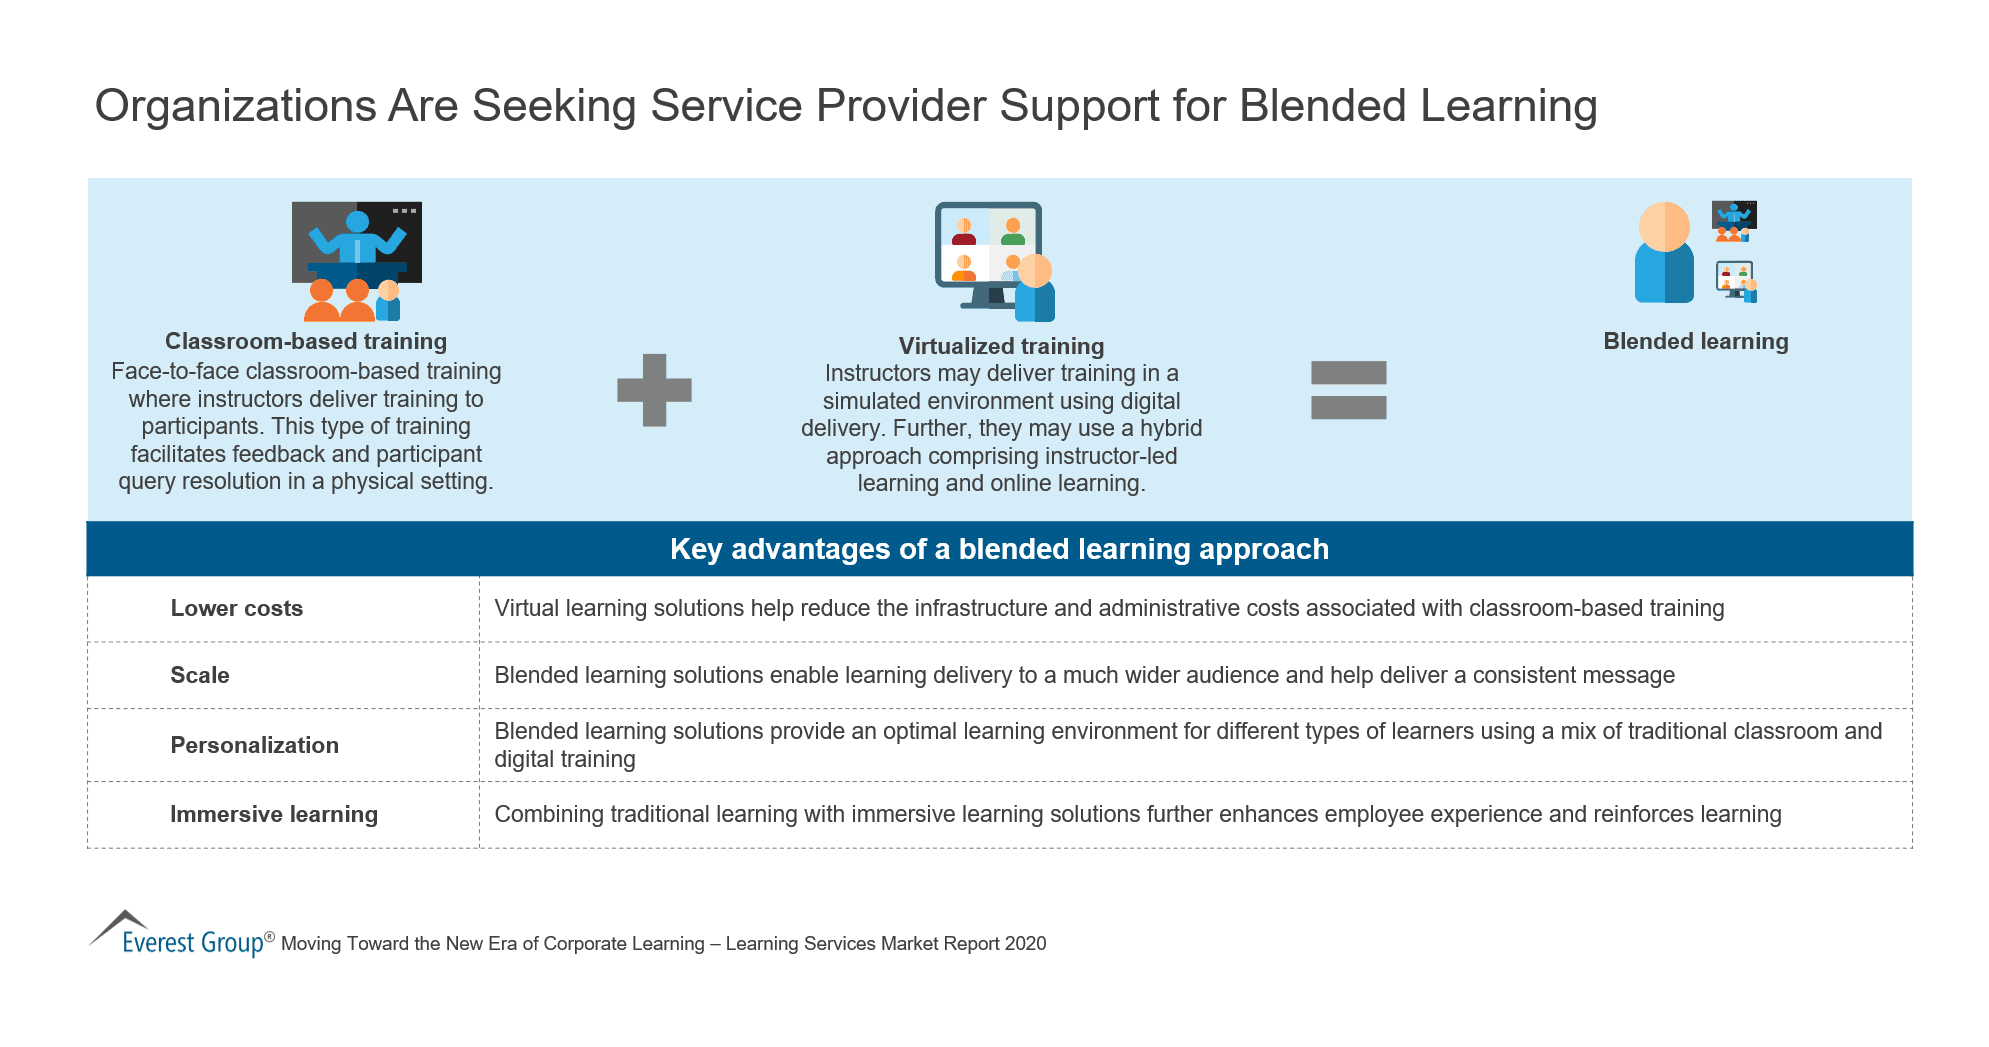 Organizations Are Seeking Service Provider Support for Blended Learning